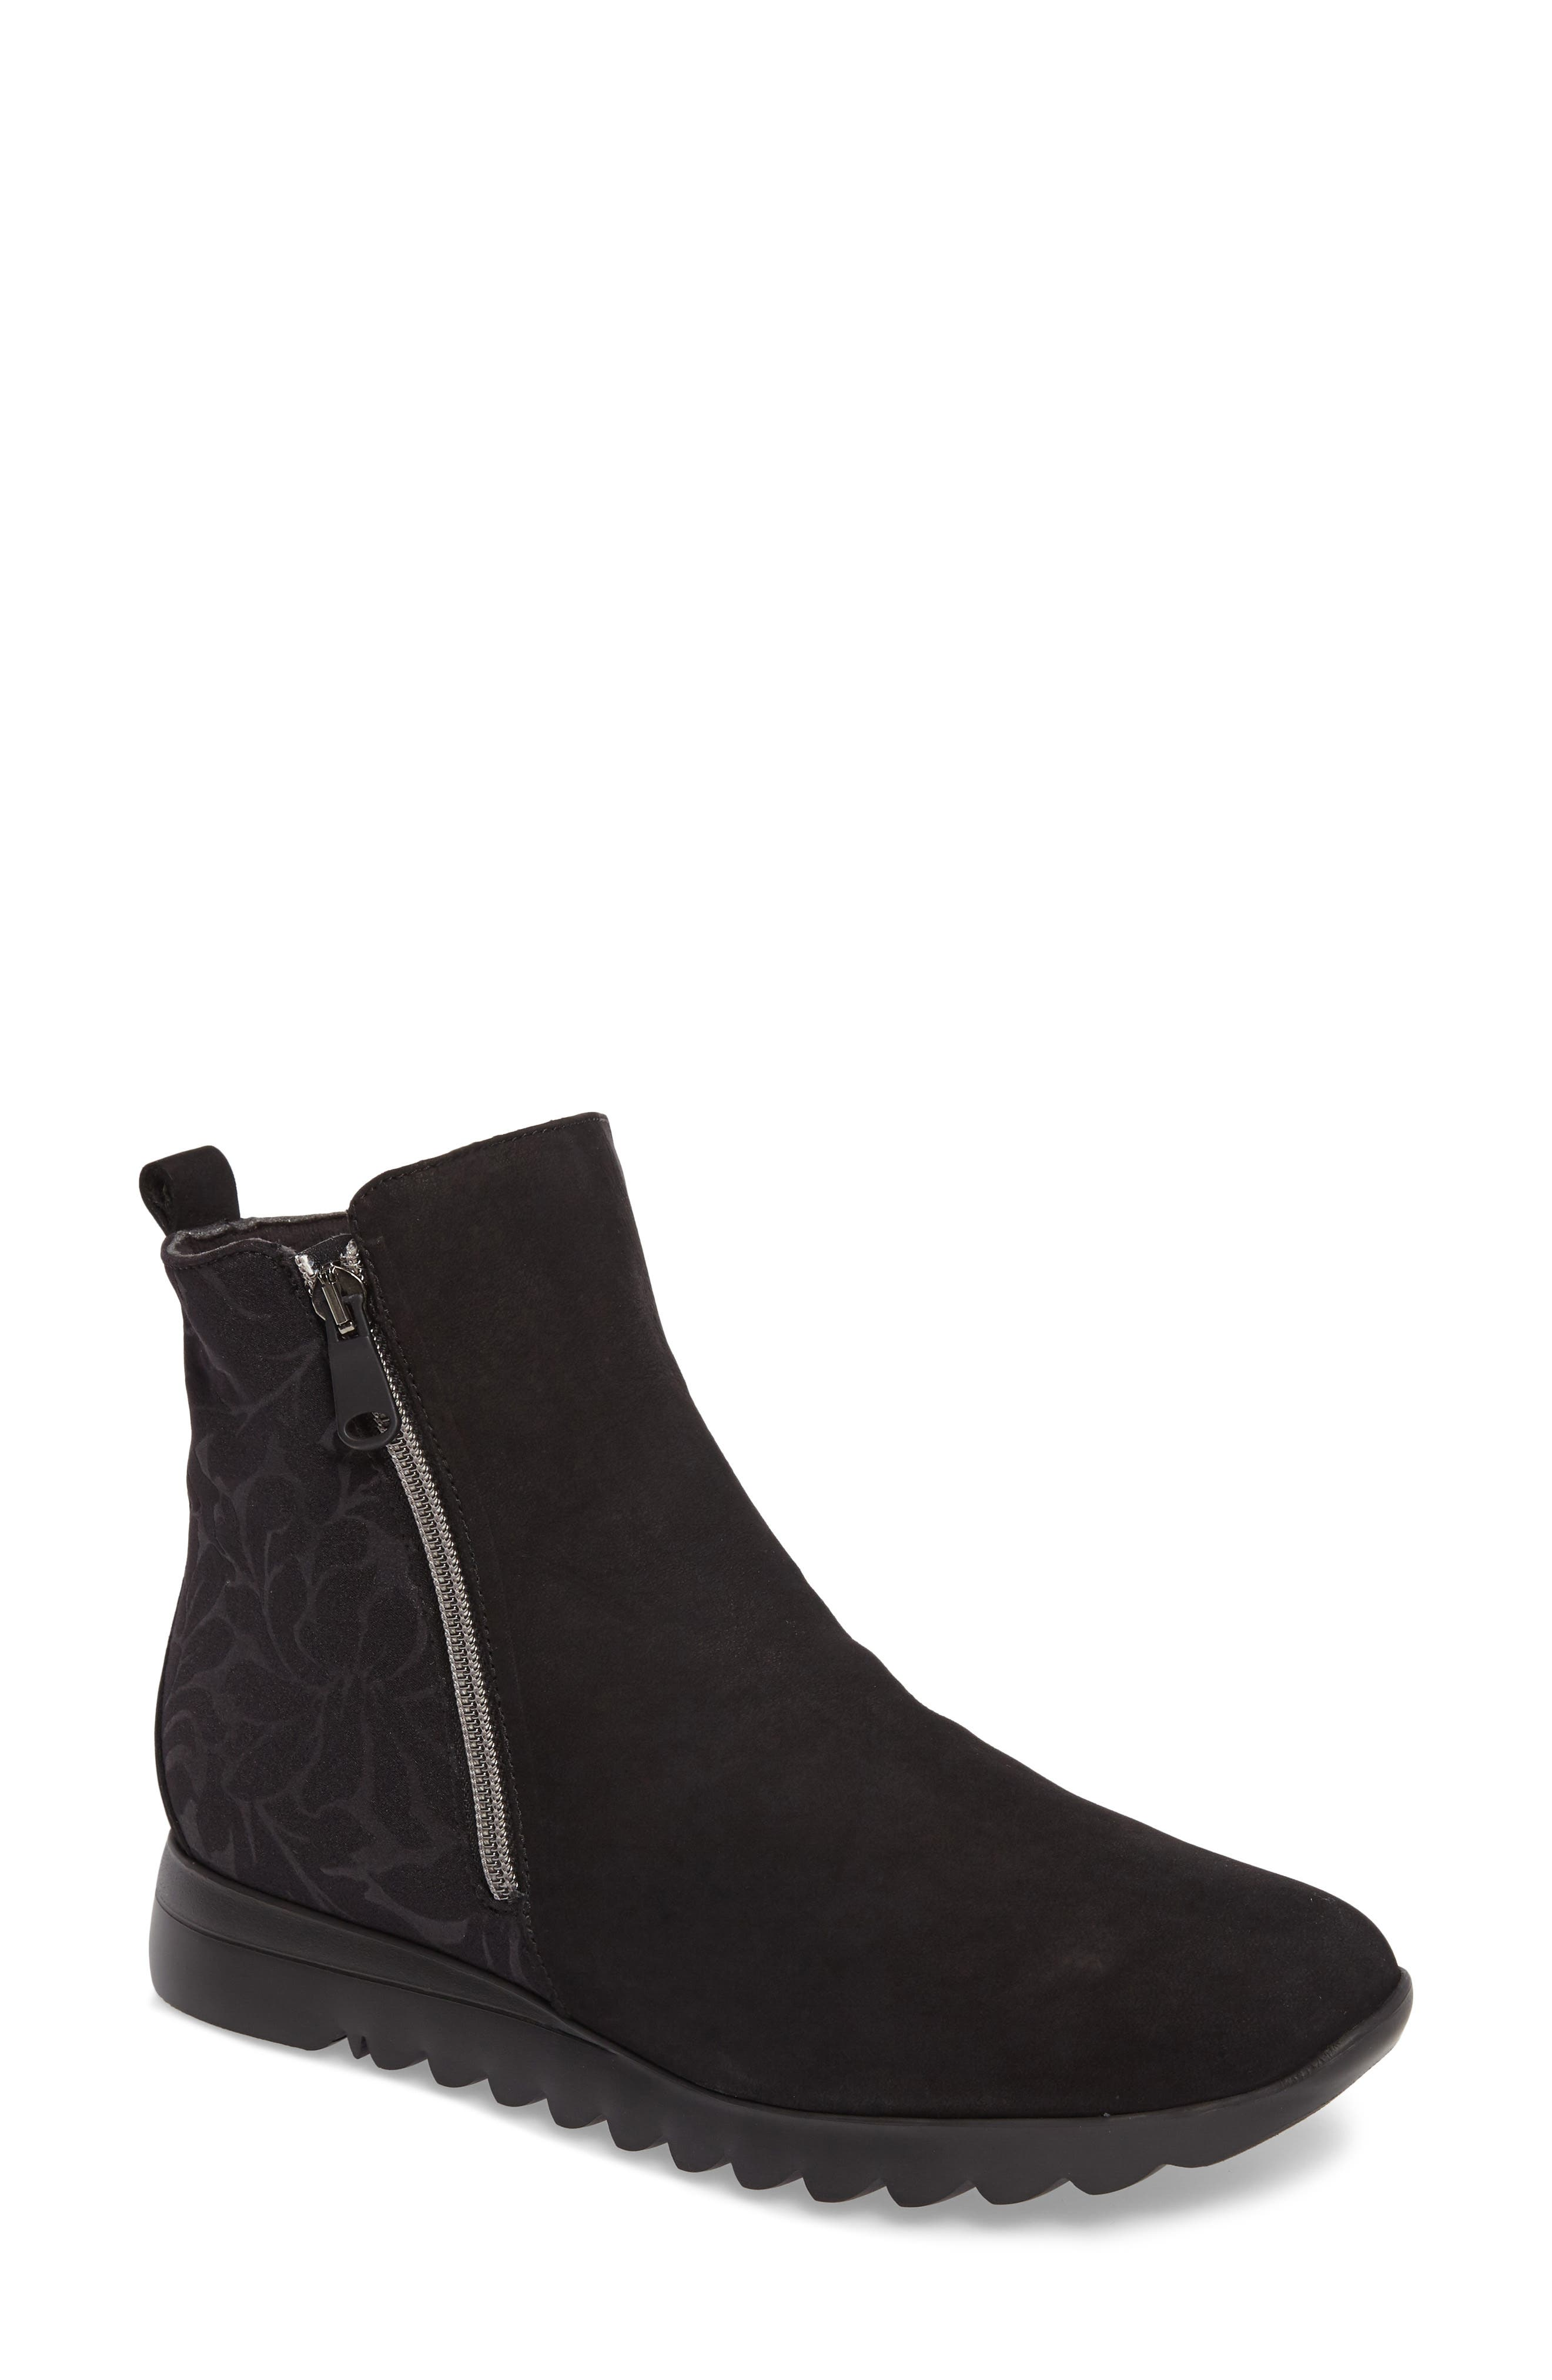 MUNRO Ashcroft Bootie, Main, color, BLACK NUBUCK